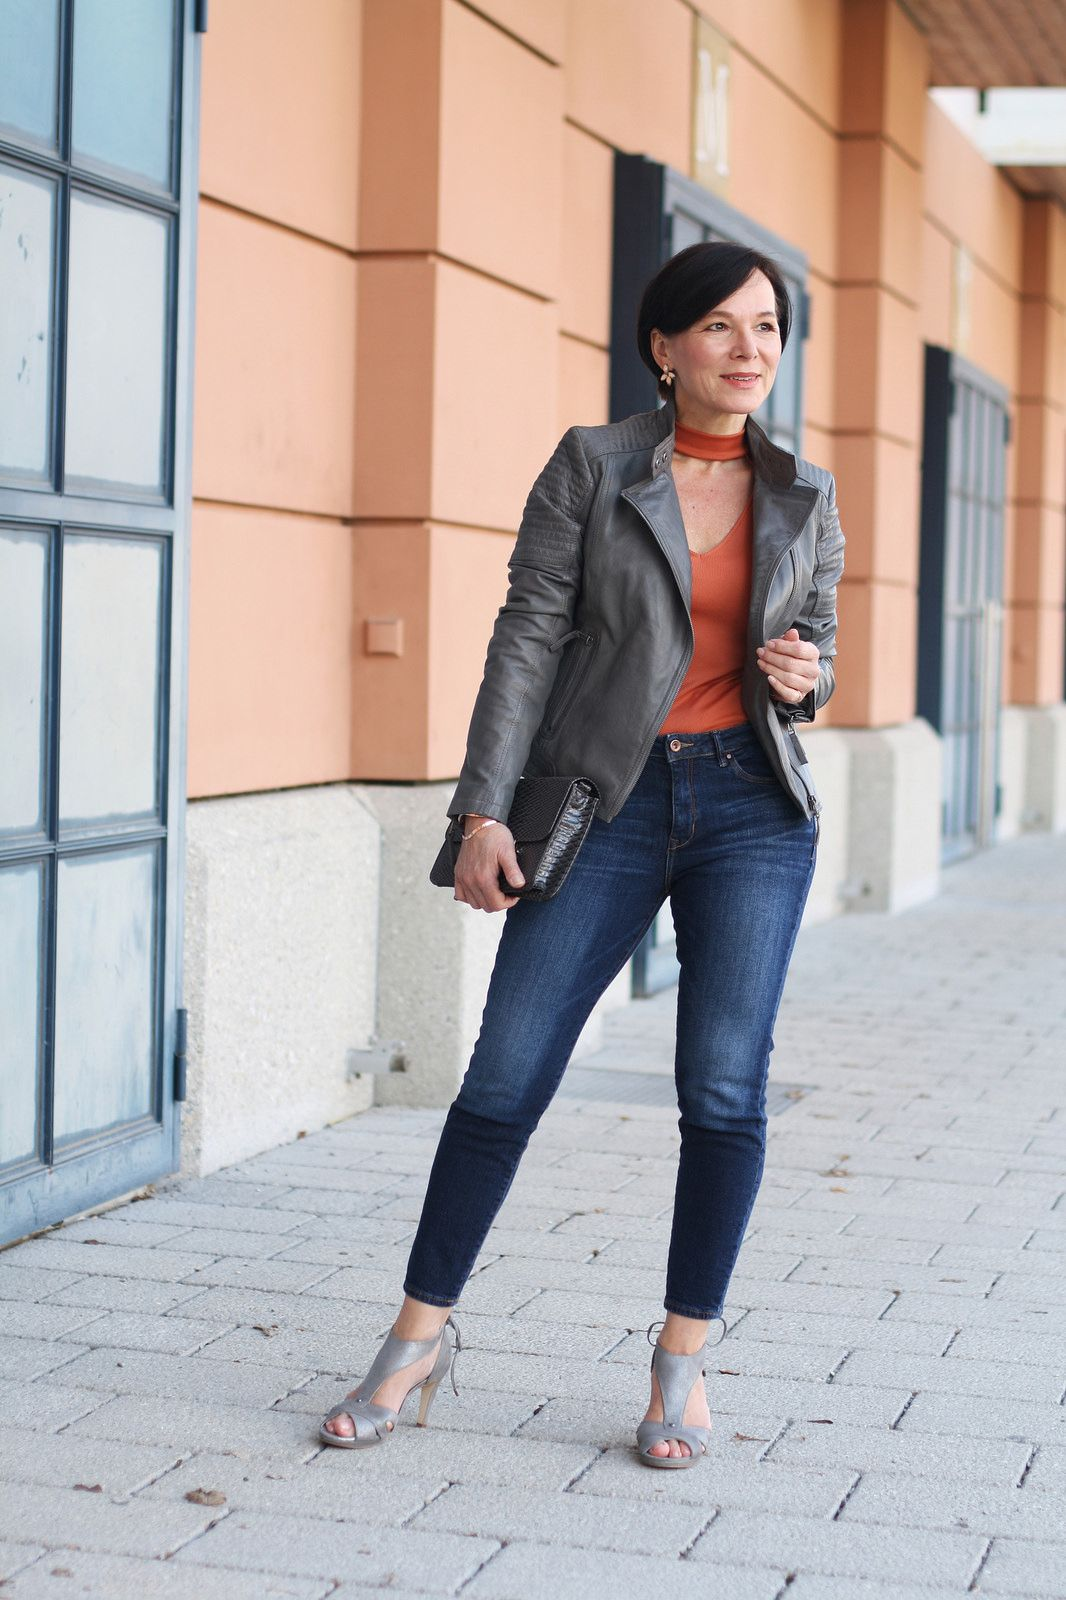 how to add a feminine touch when you are wearing casual jeans and a